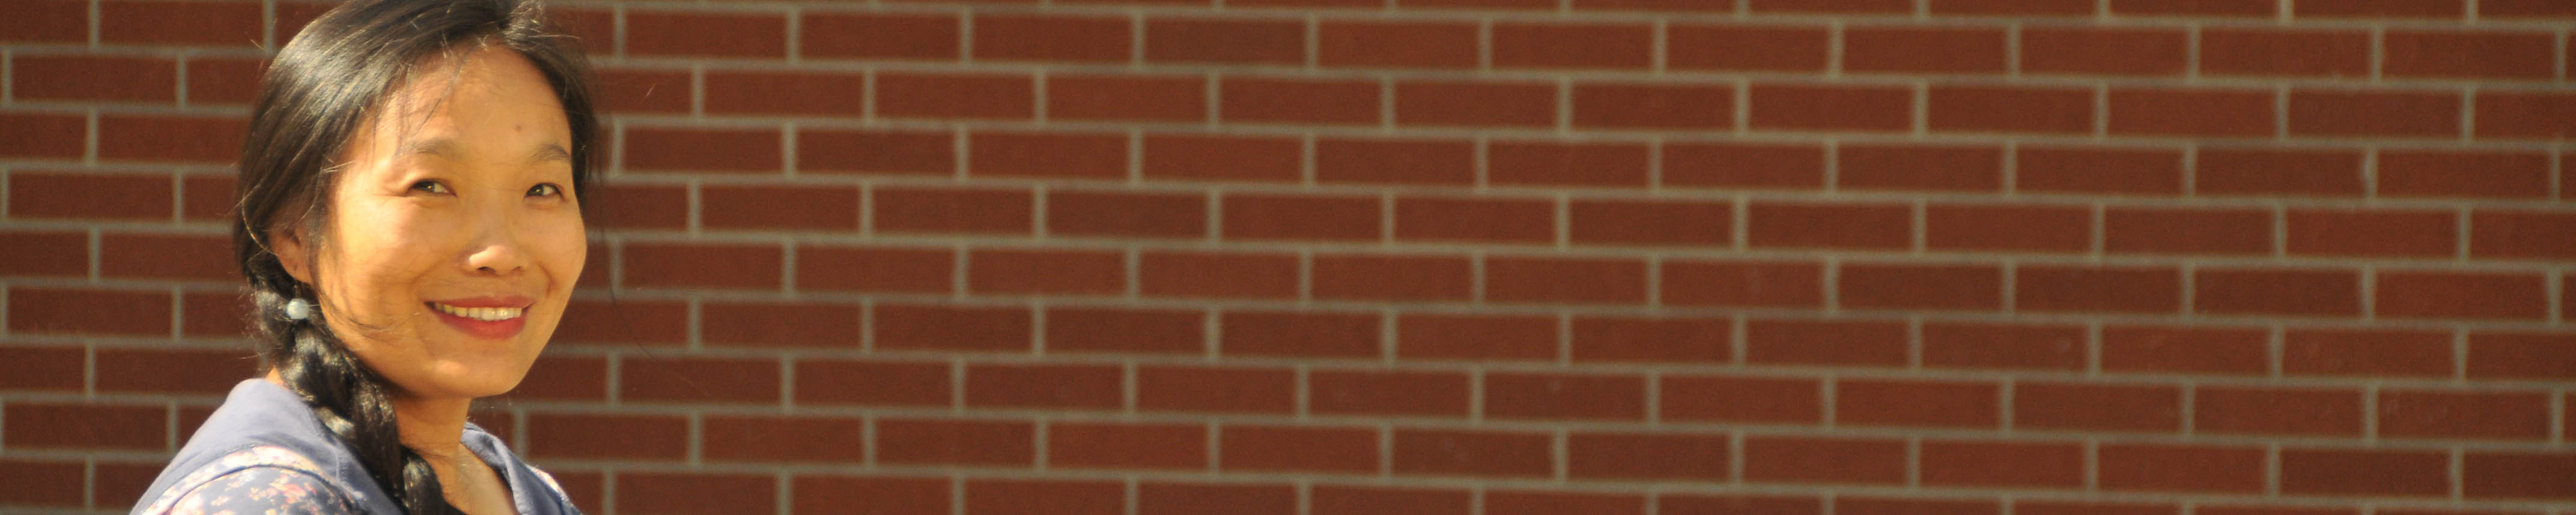 Asian woman in front of brick wall on college campus